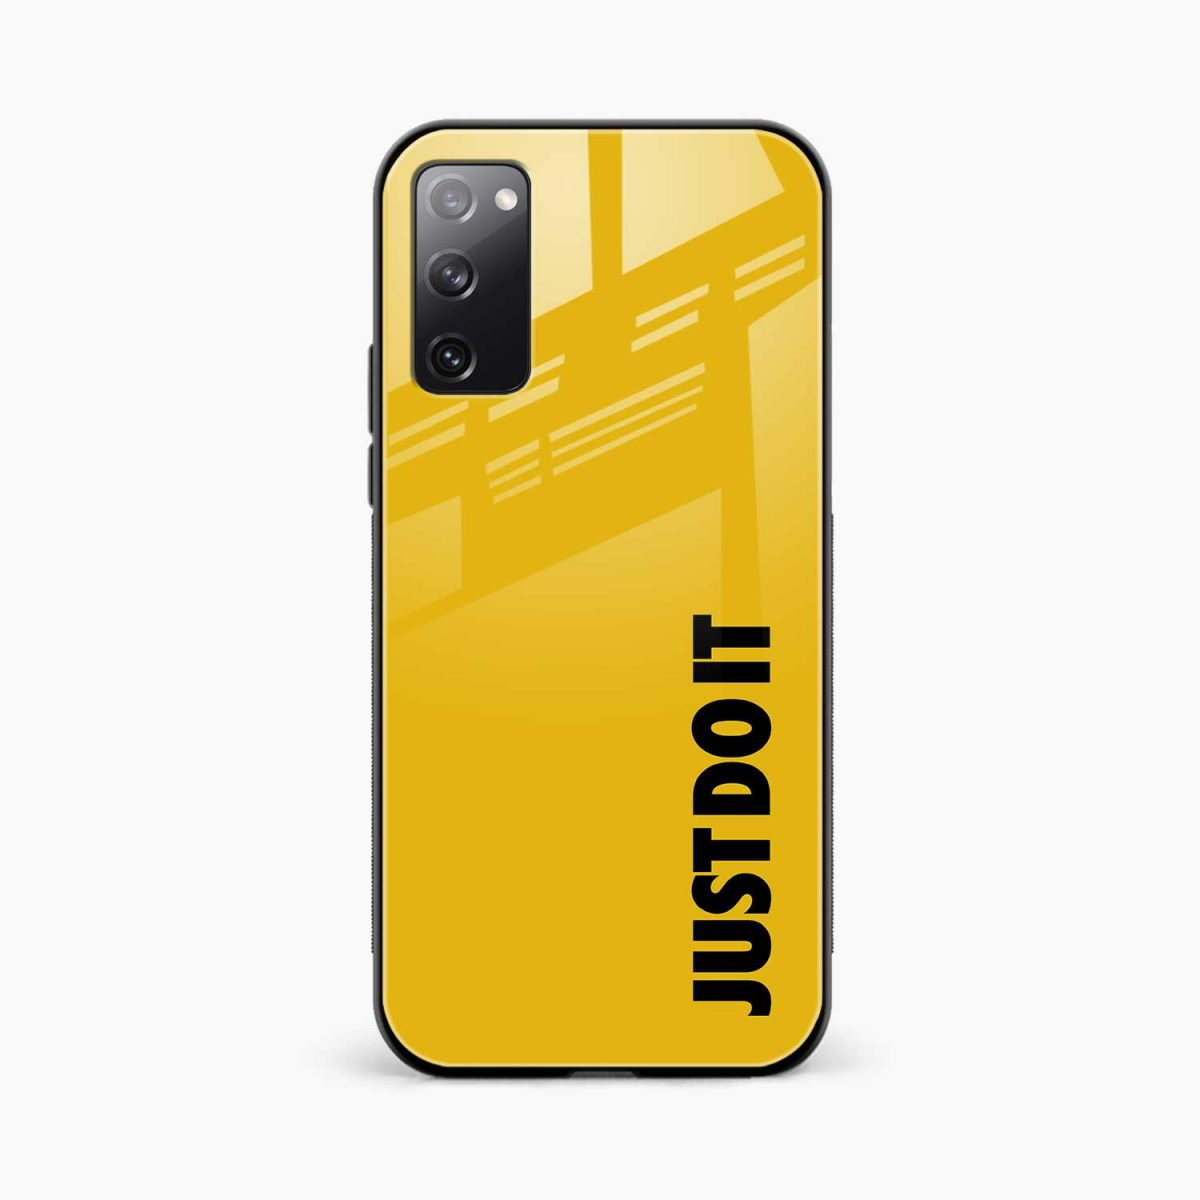 just do it front view samsung galaxy s20 fe back cover